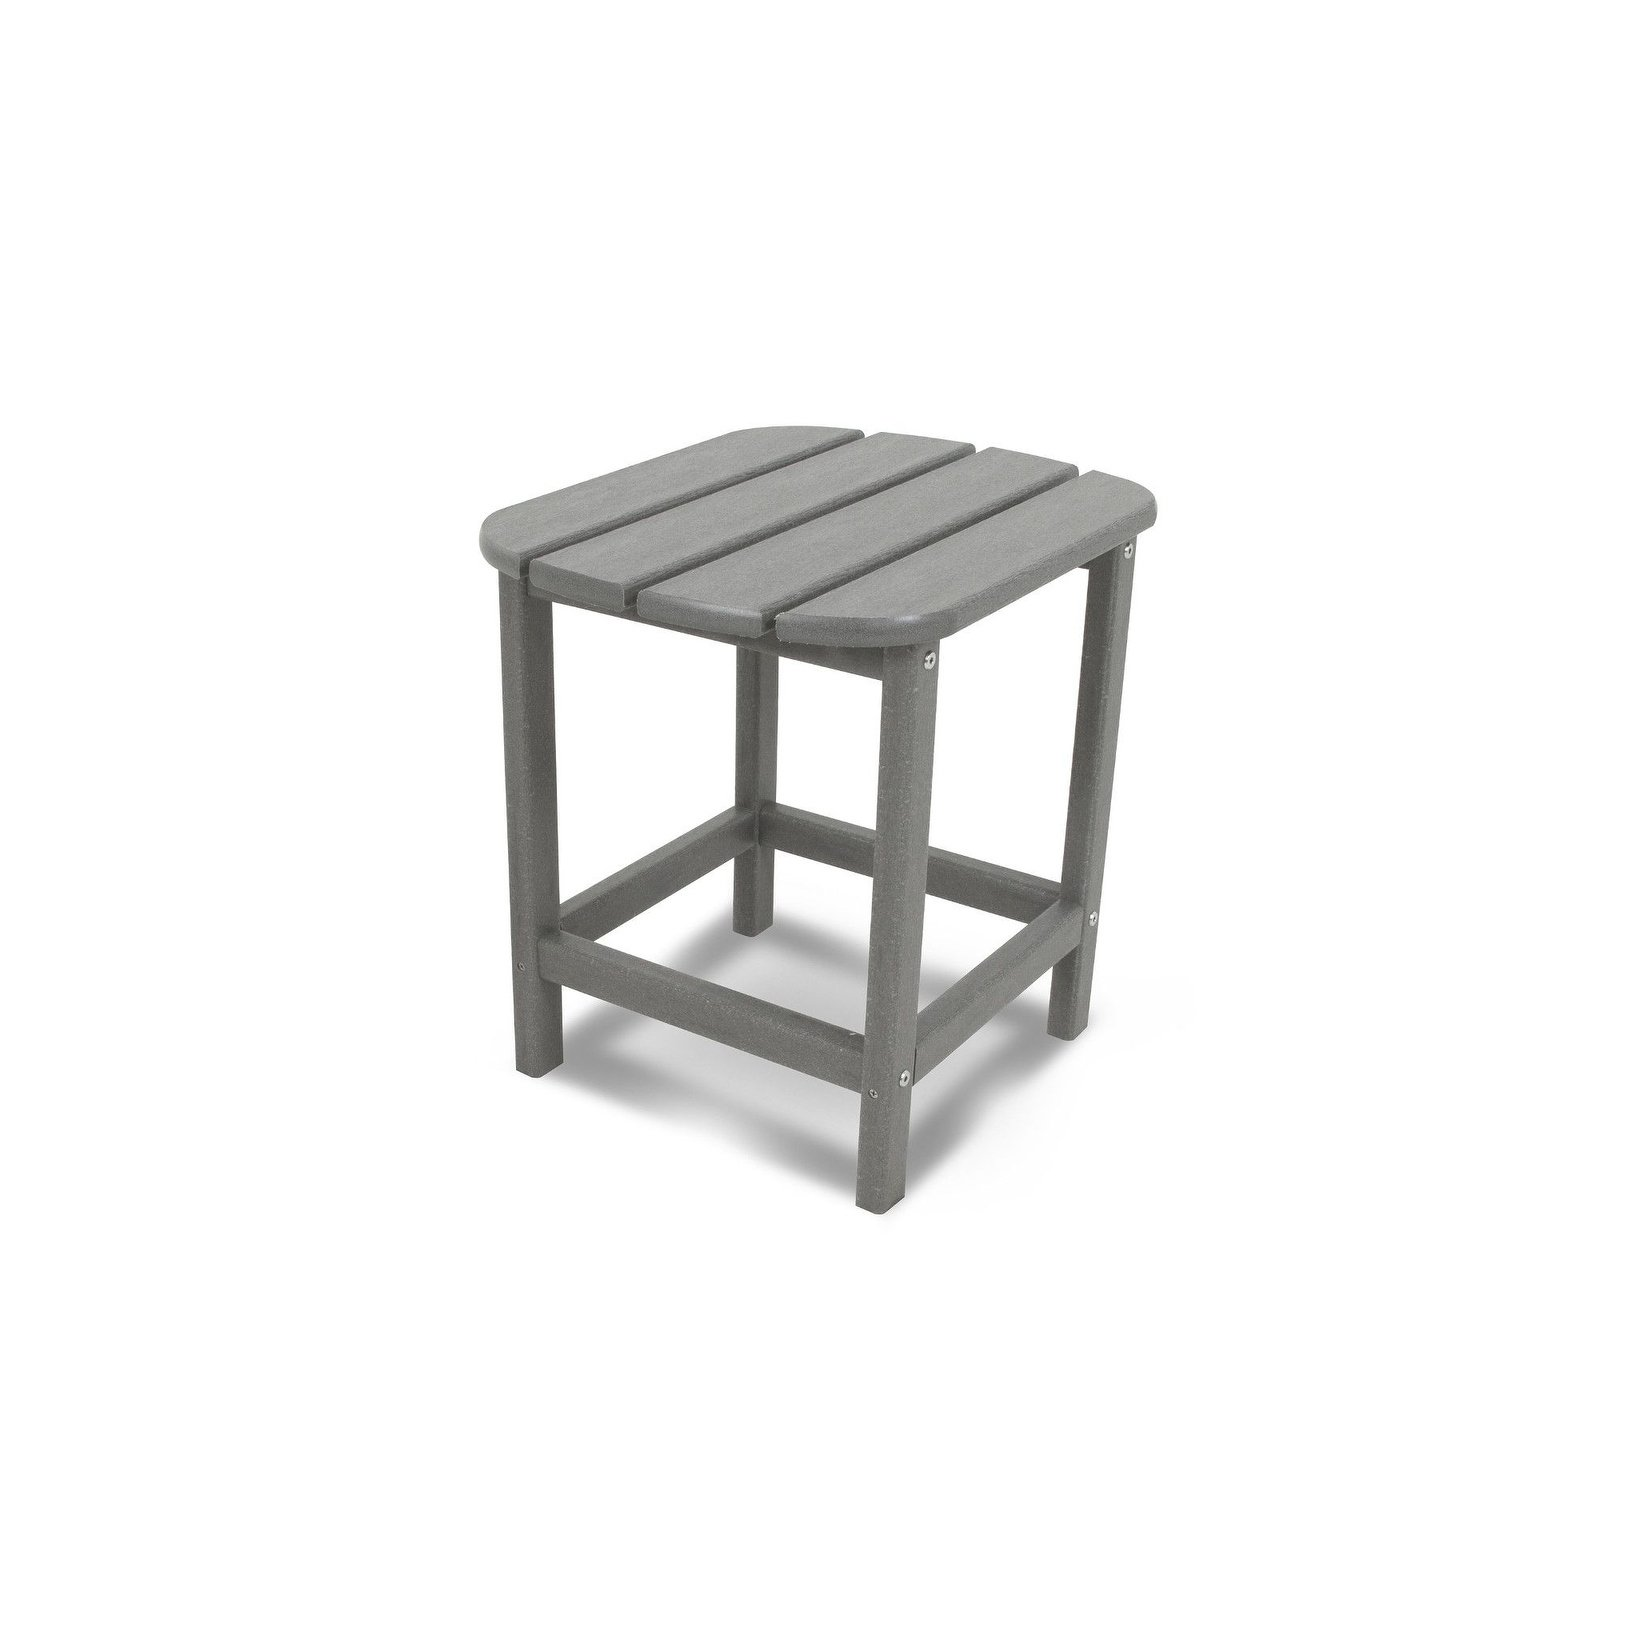 polywood south beach inch outdoor side table free shipping metal today sequin tablecloth white tray target file cabinet wood for furniture brass end glass top patio clearance